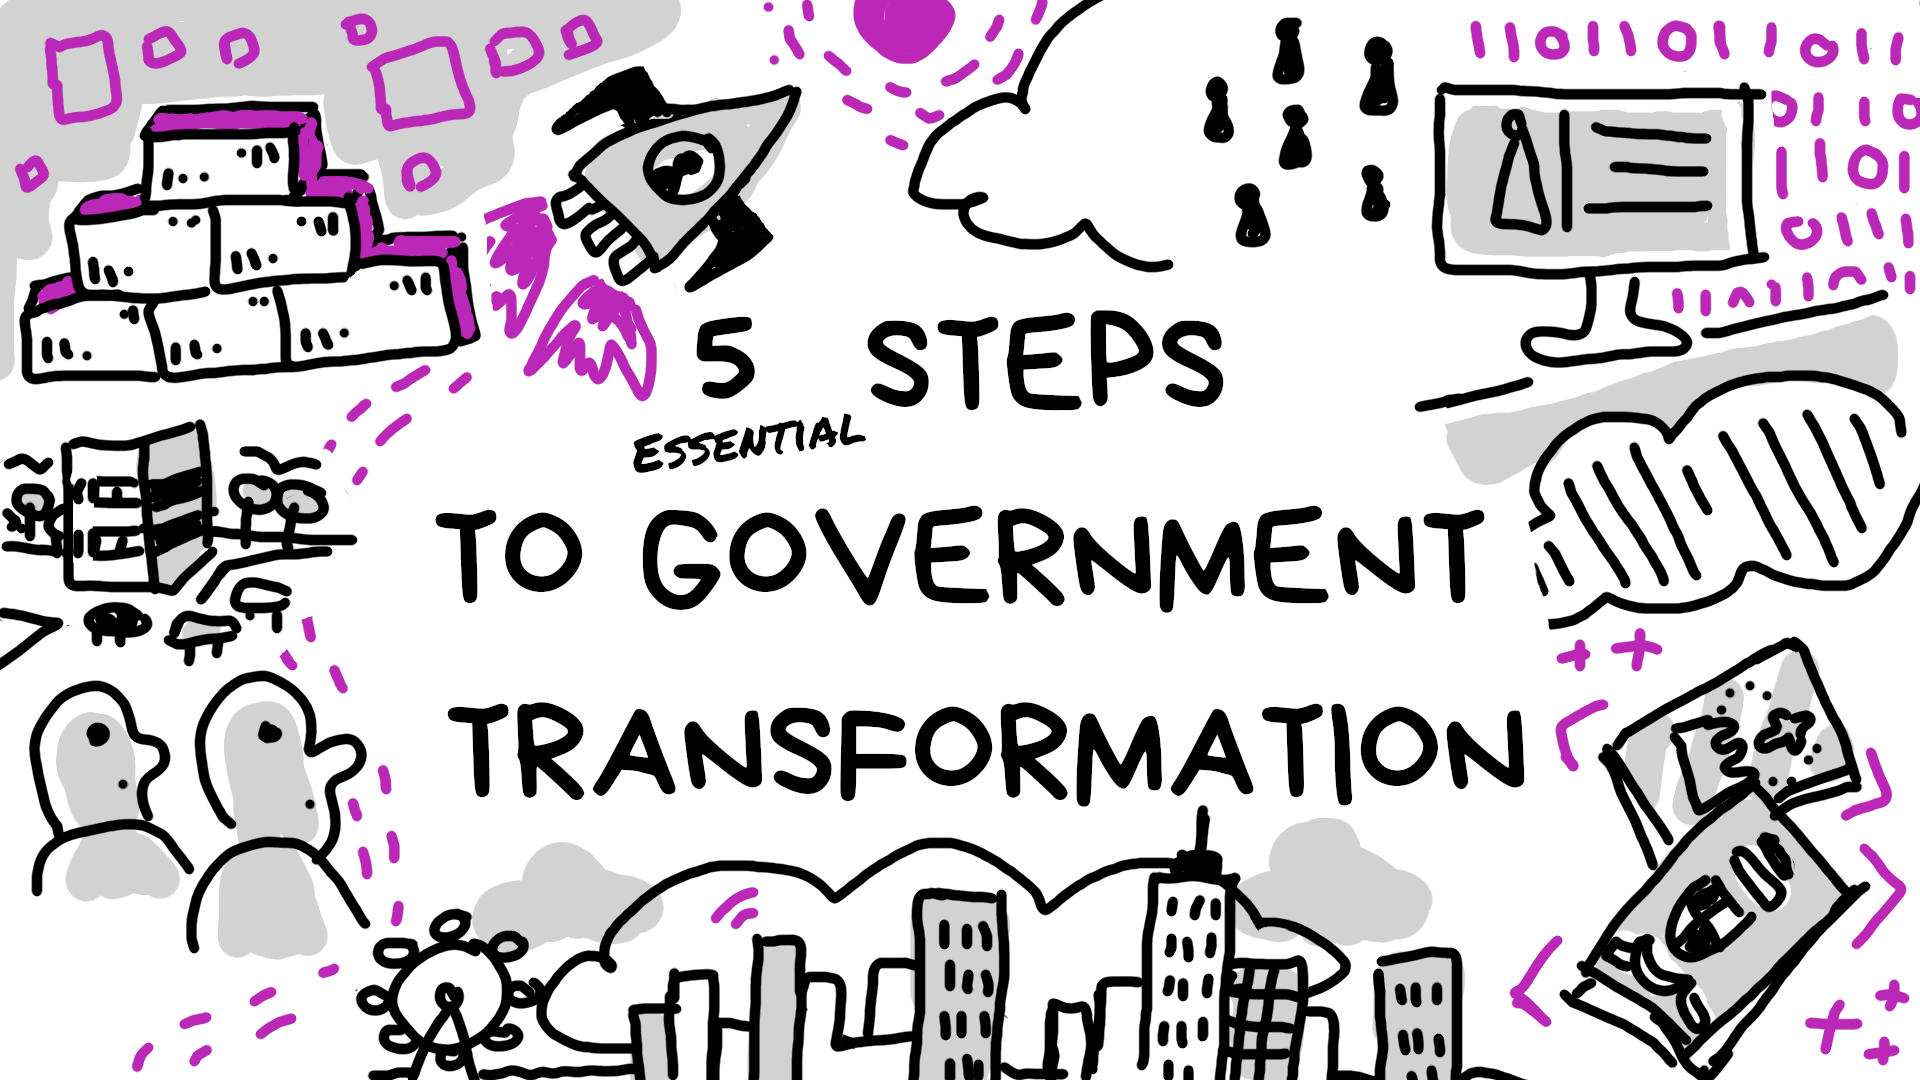 5 Steps to Government Transformation